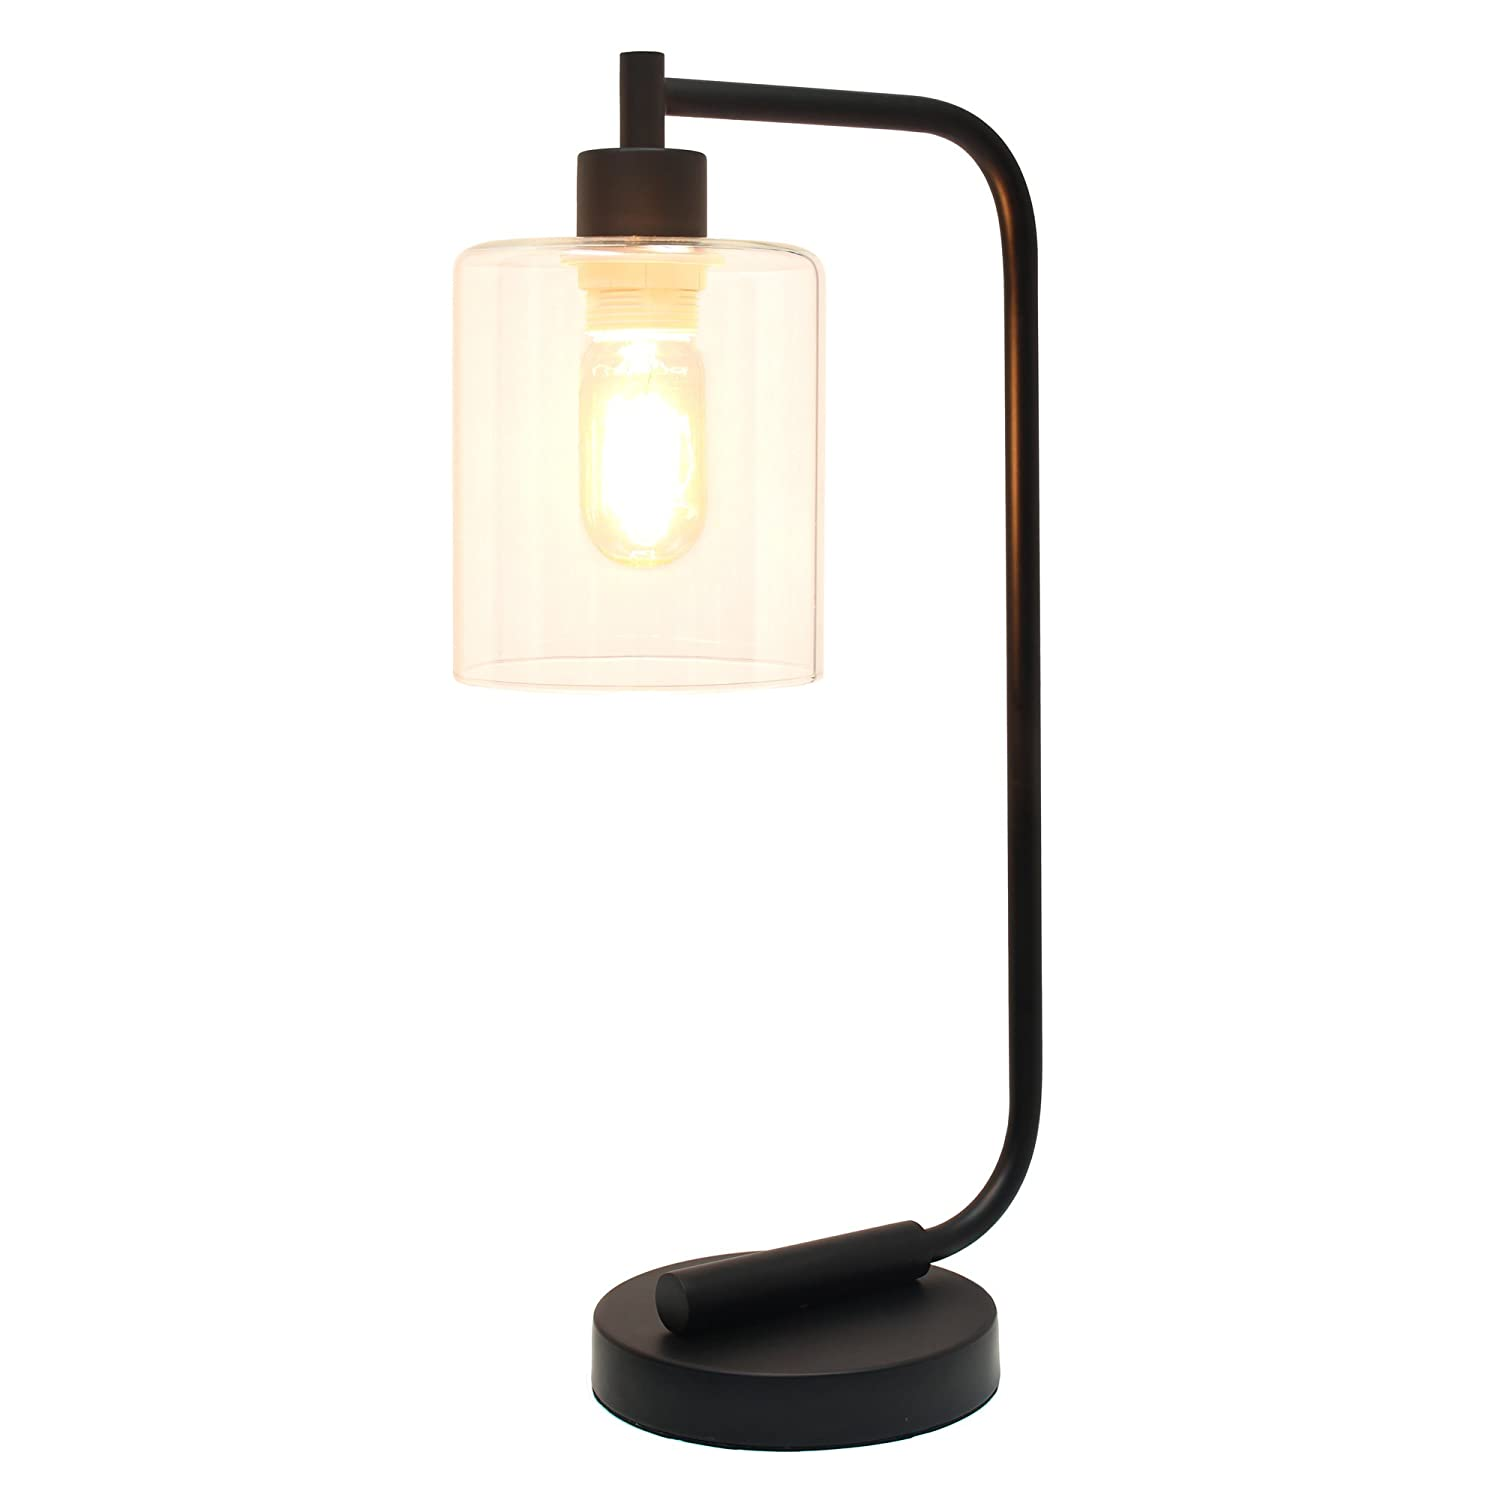 Simple designs home ld1036 blk bronson antique style industrial iron simple designs home ld1036 blk bronson antique style industrial iron lantern desk lamp with glass shade black amazon aloadofball Image collections